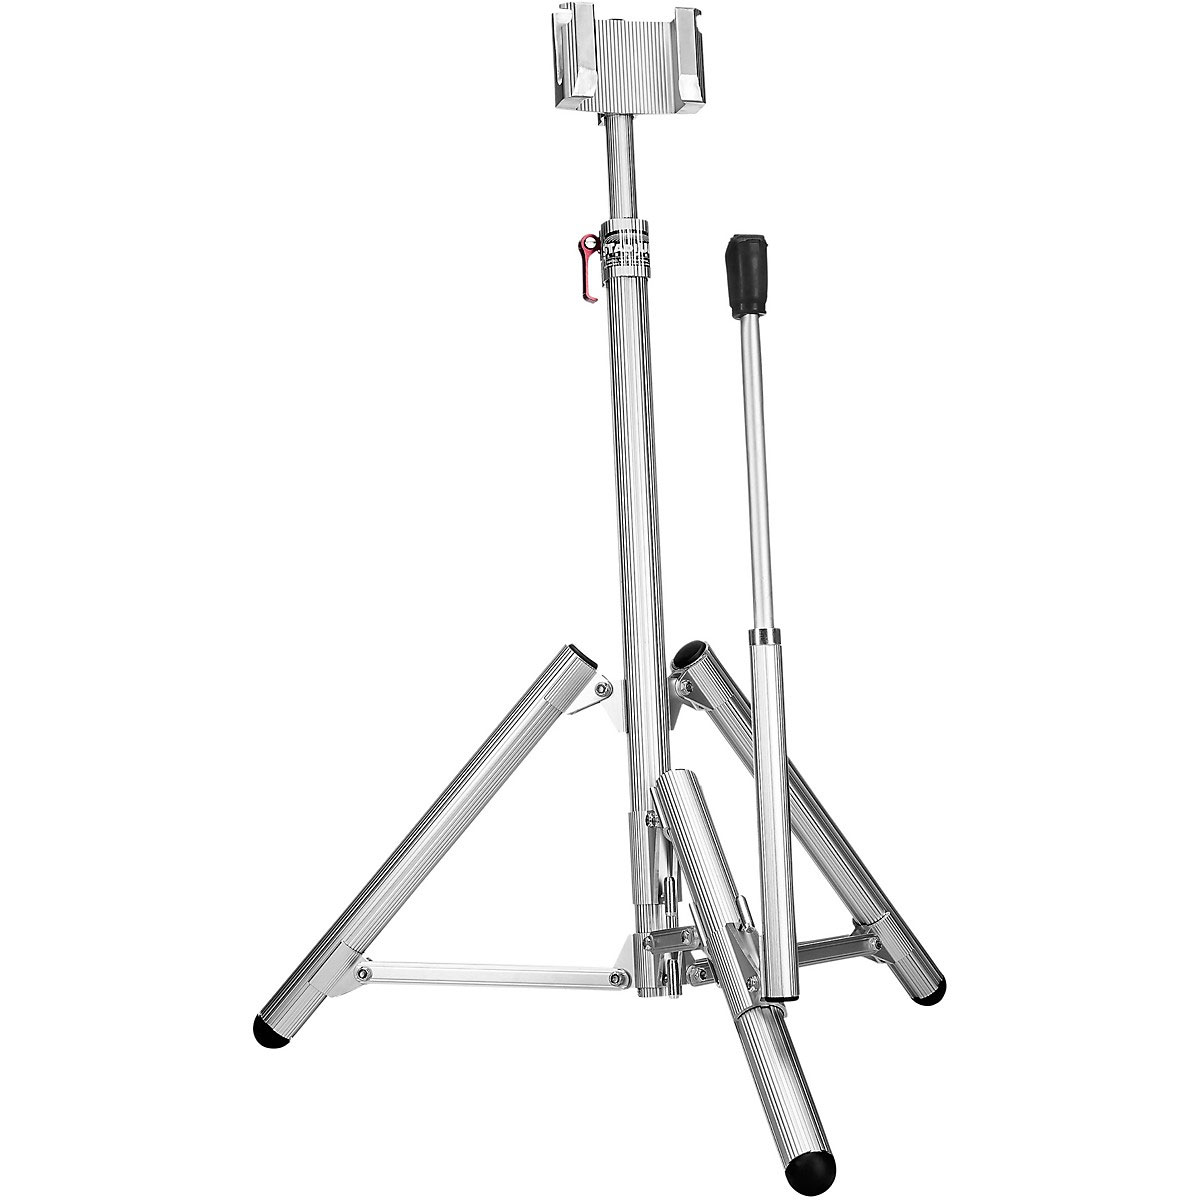 Mapex/Randall May Modular AIRlift Stadium Hardware Marching Tenor Stand with Carry-On Bag